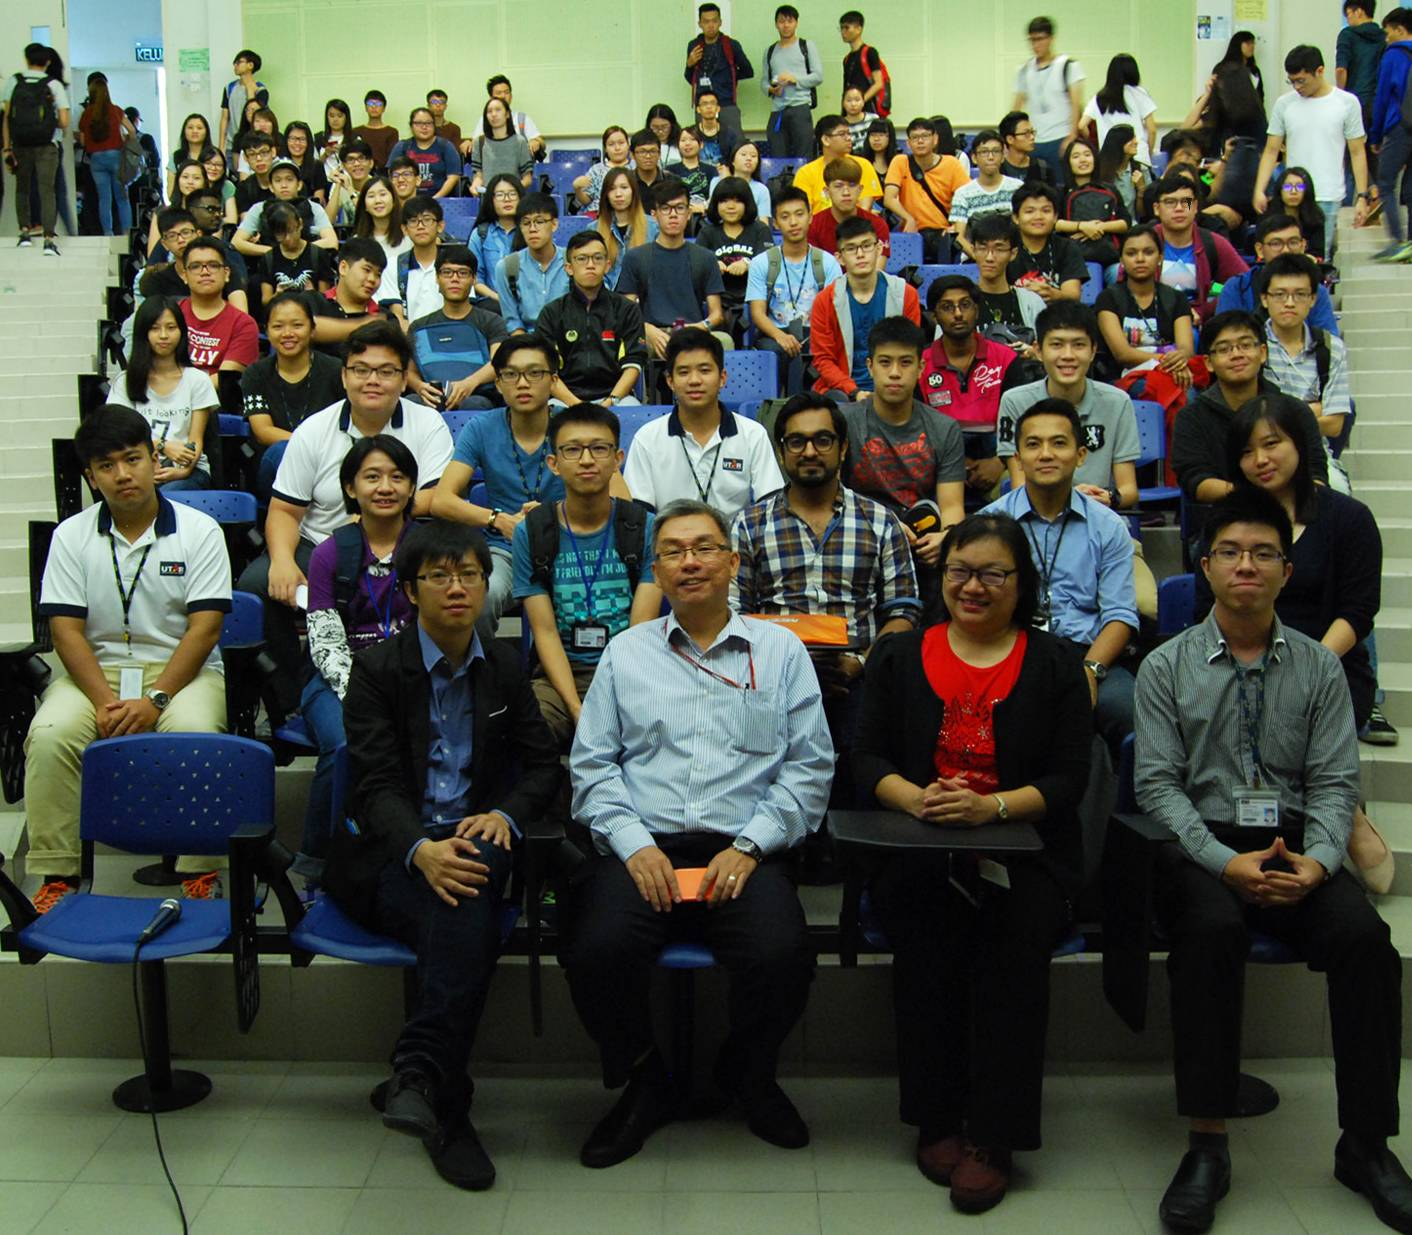 Jacky Cheng with the participants